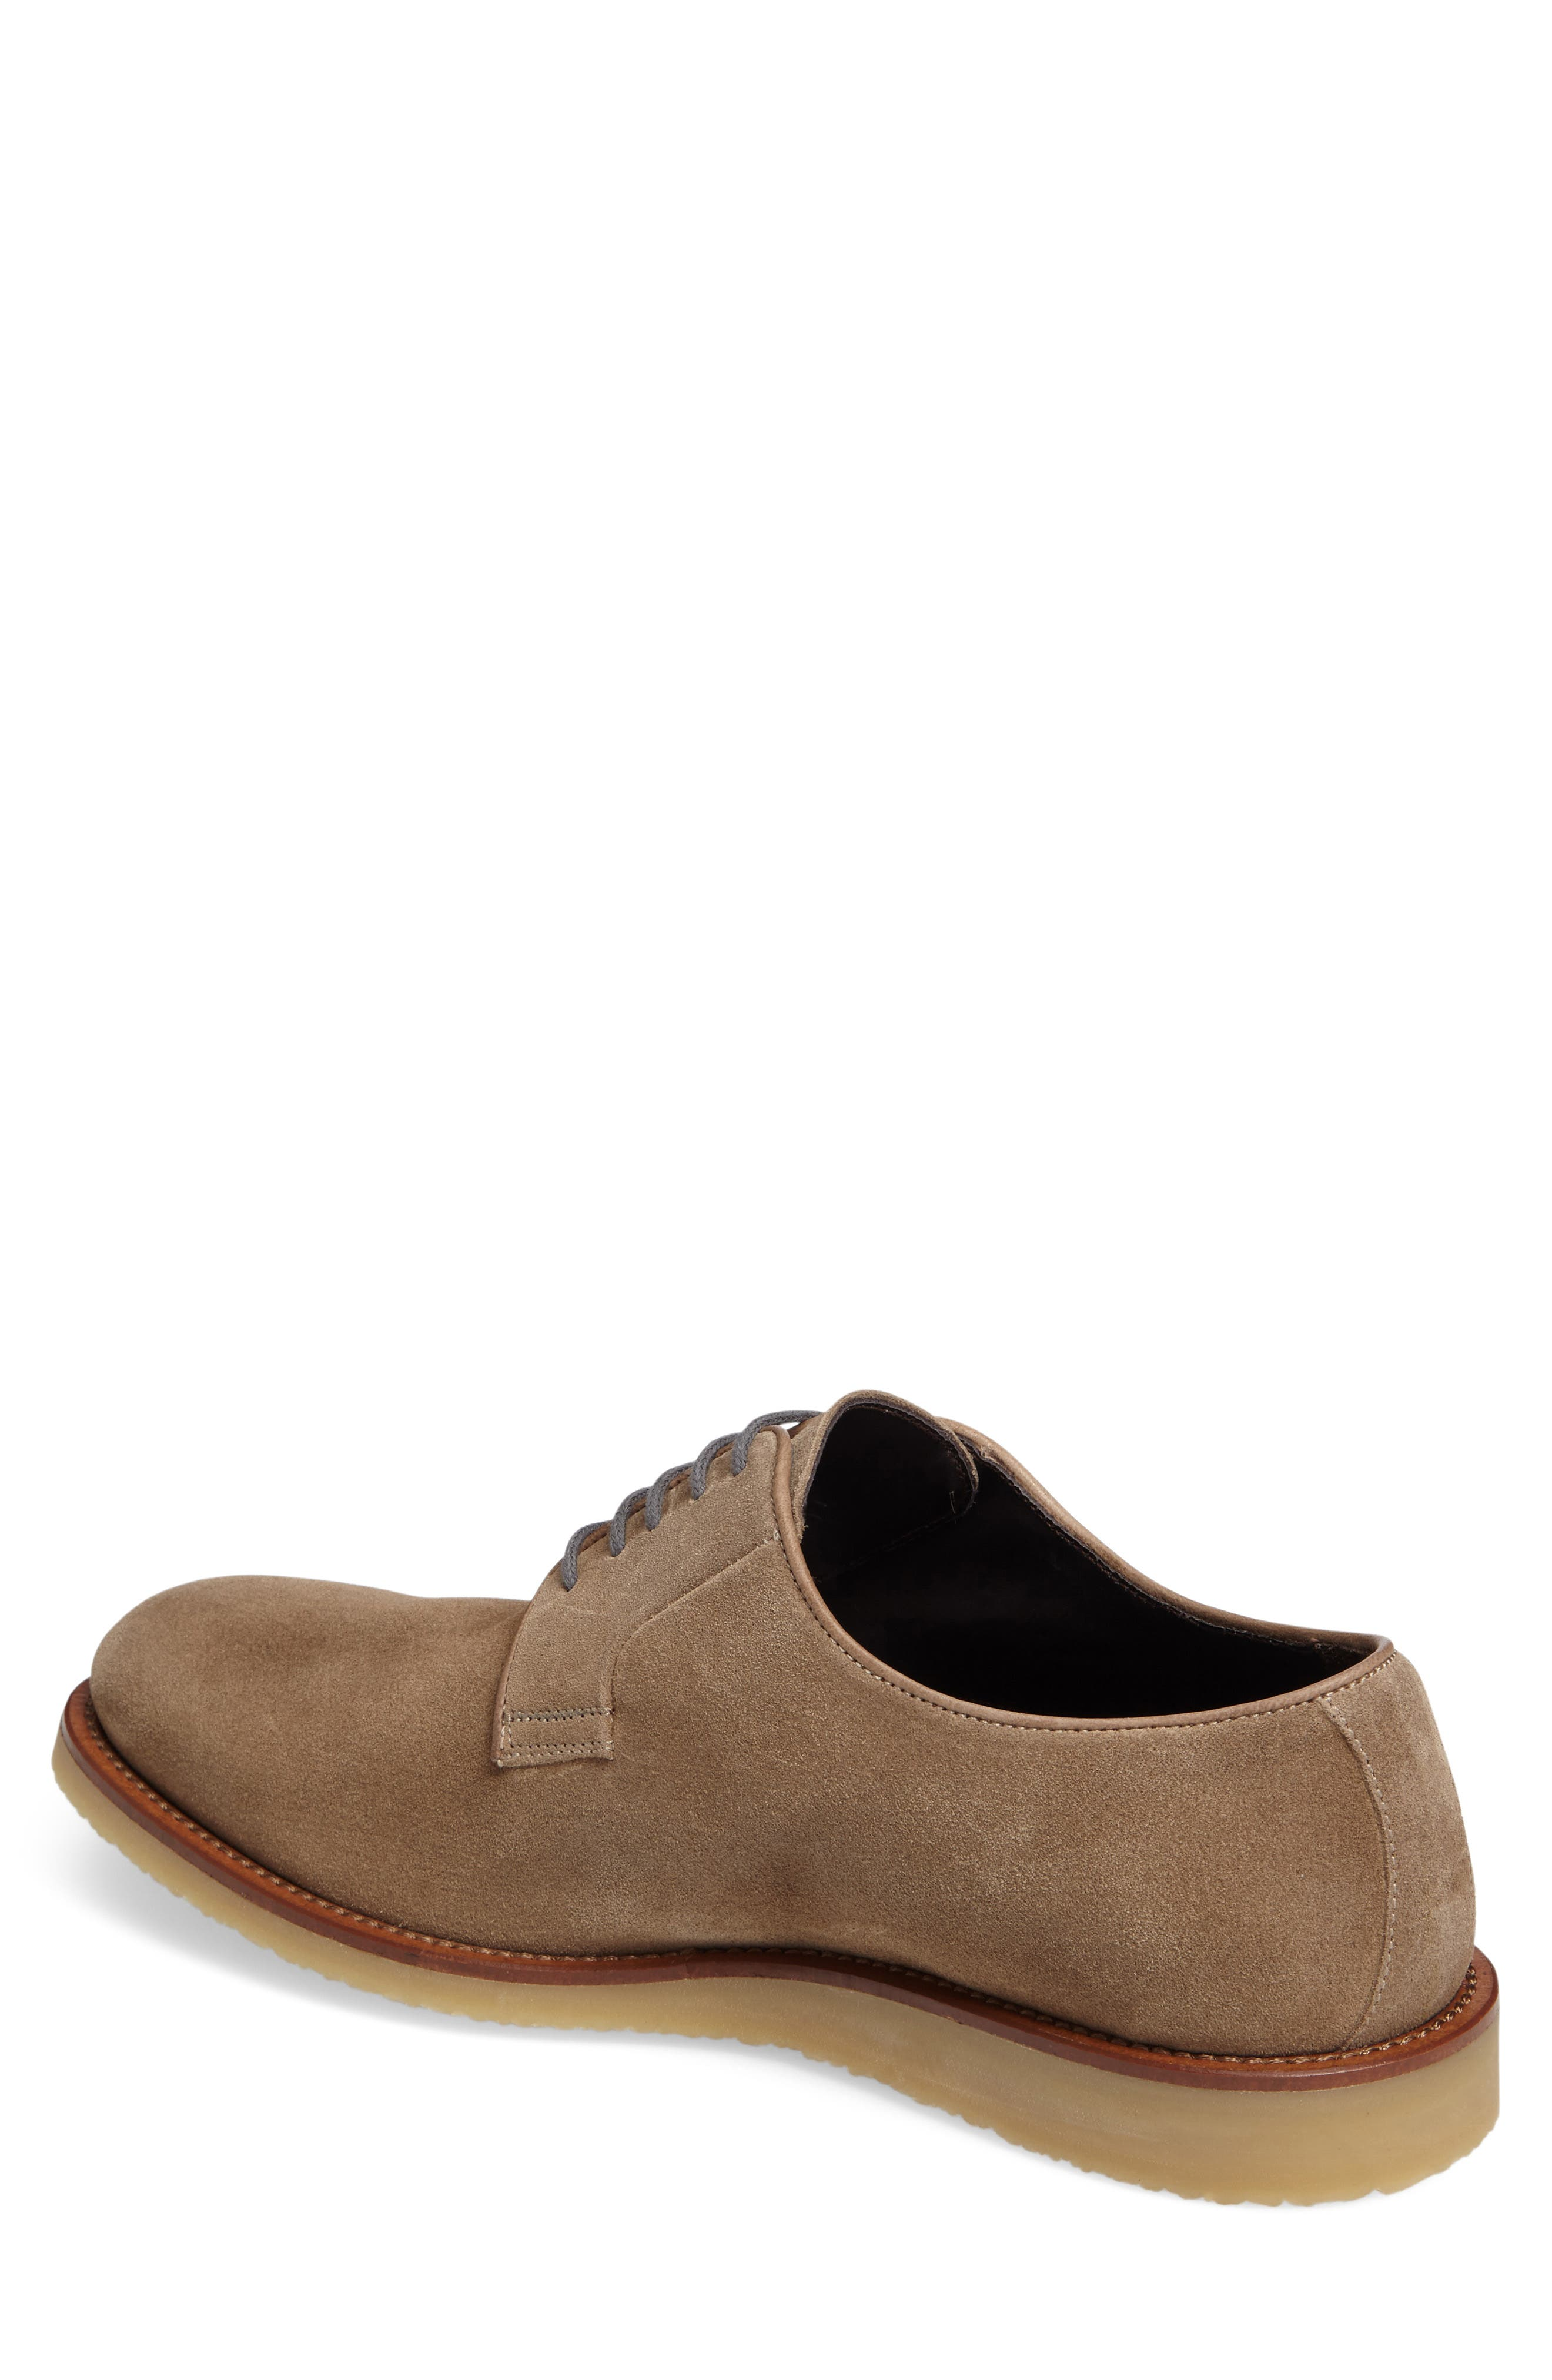 Alternate Image 2  - To Boot New York Jack Buck Shoe (Men)